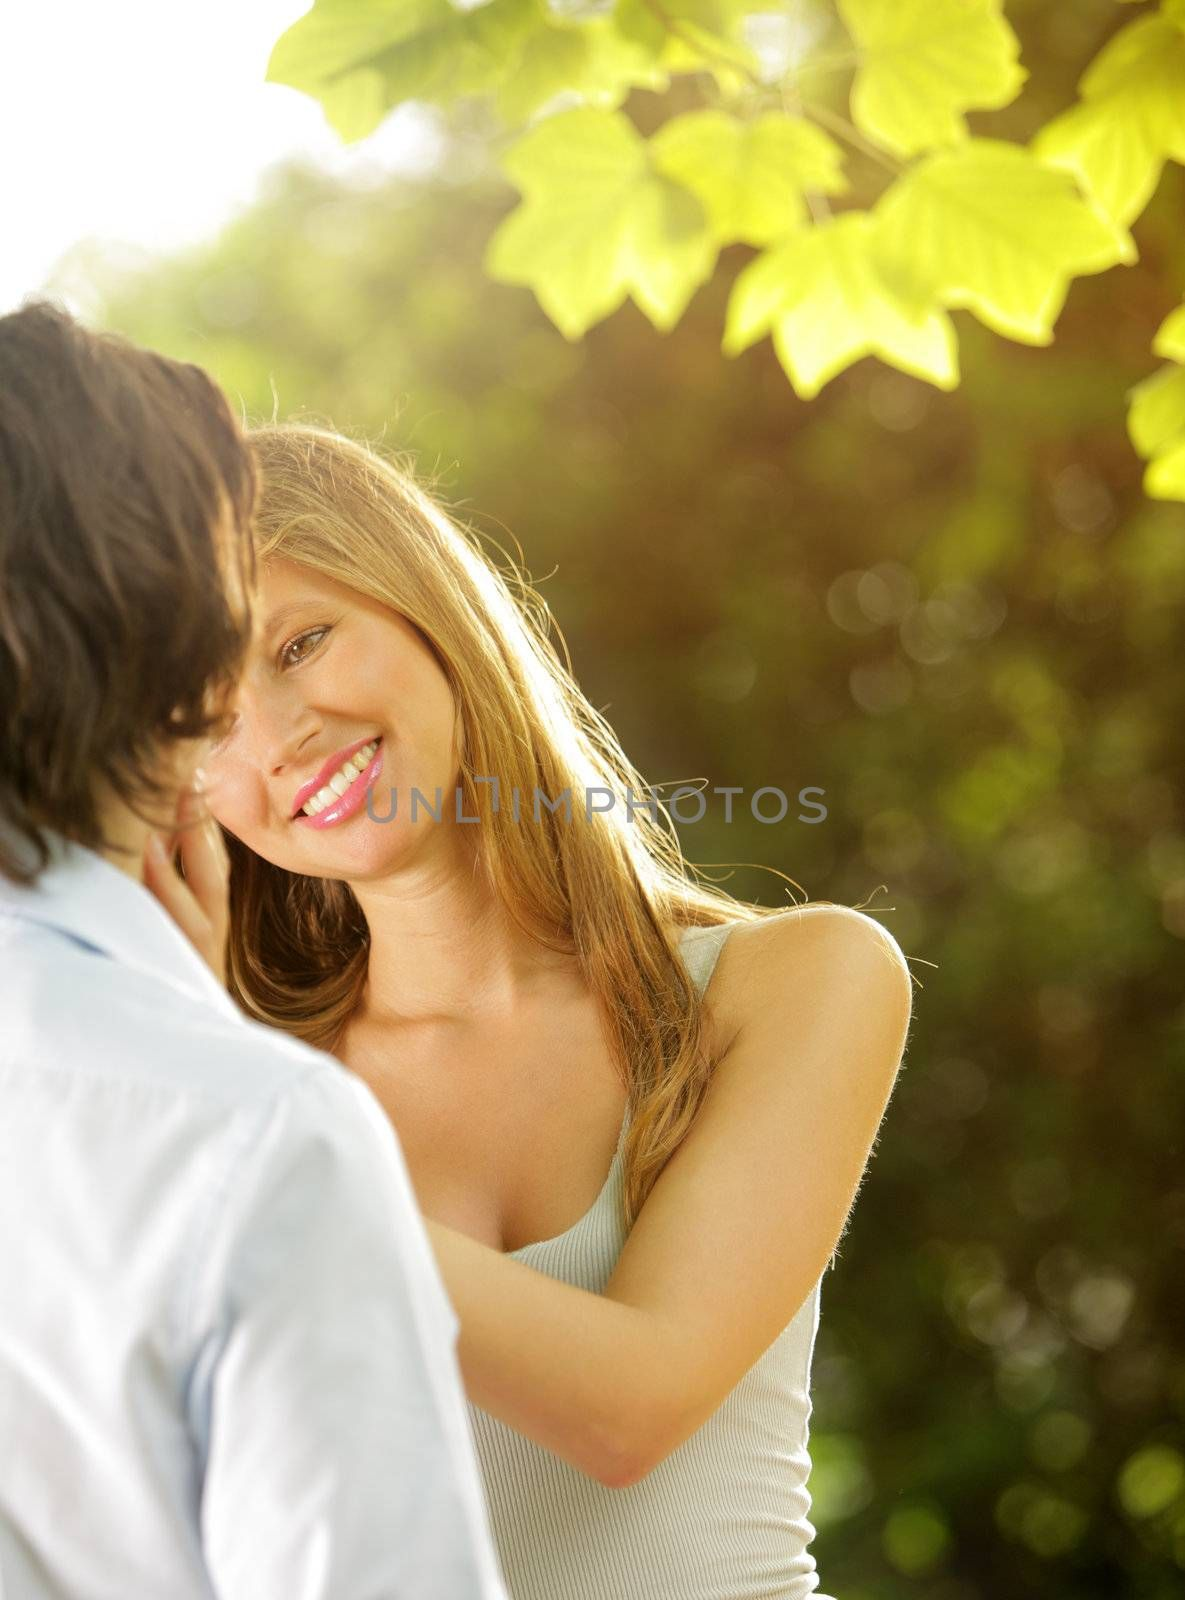 a young couple in love having fun in the park